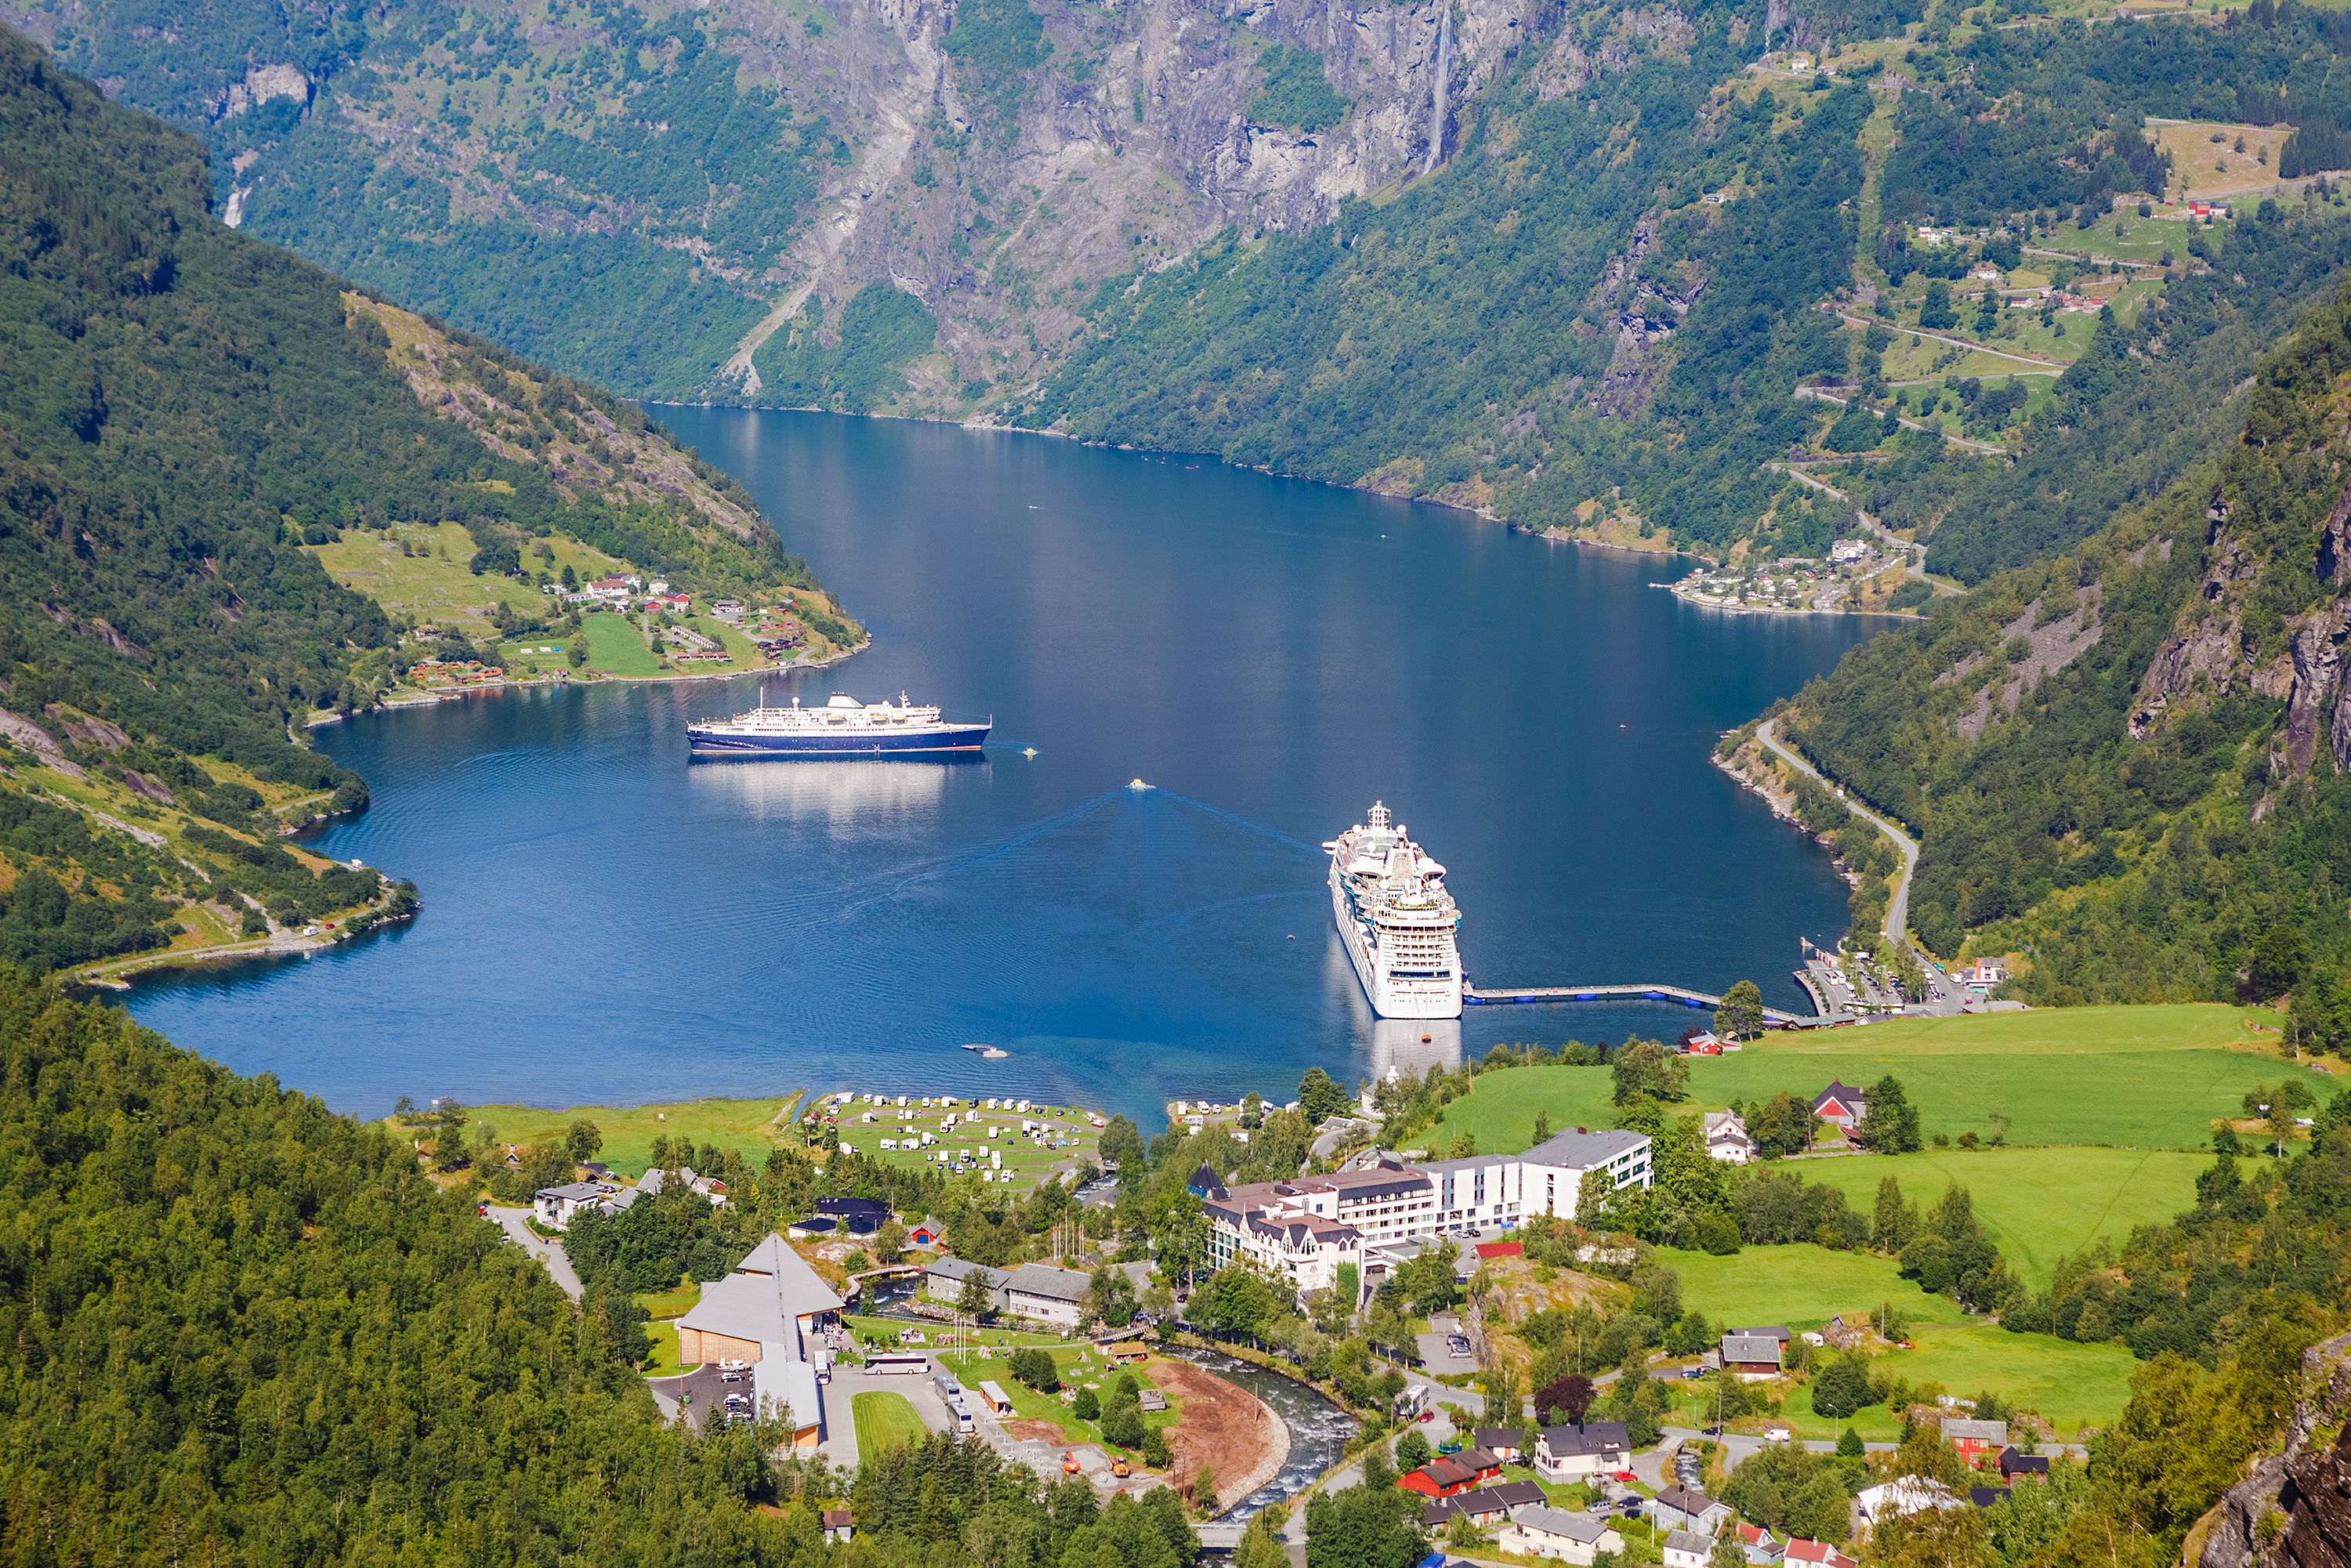 Royal Caribbean International - 2017 Europe sailings are available!